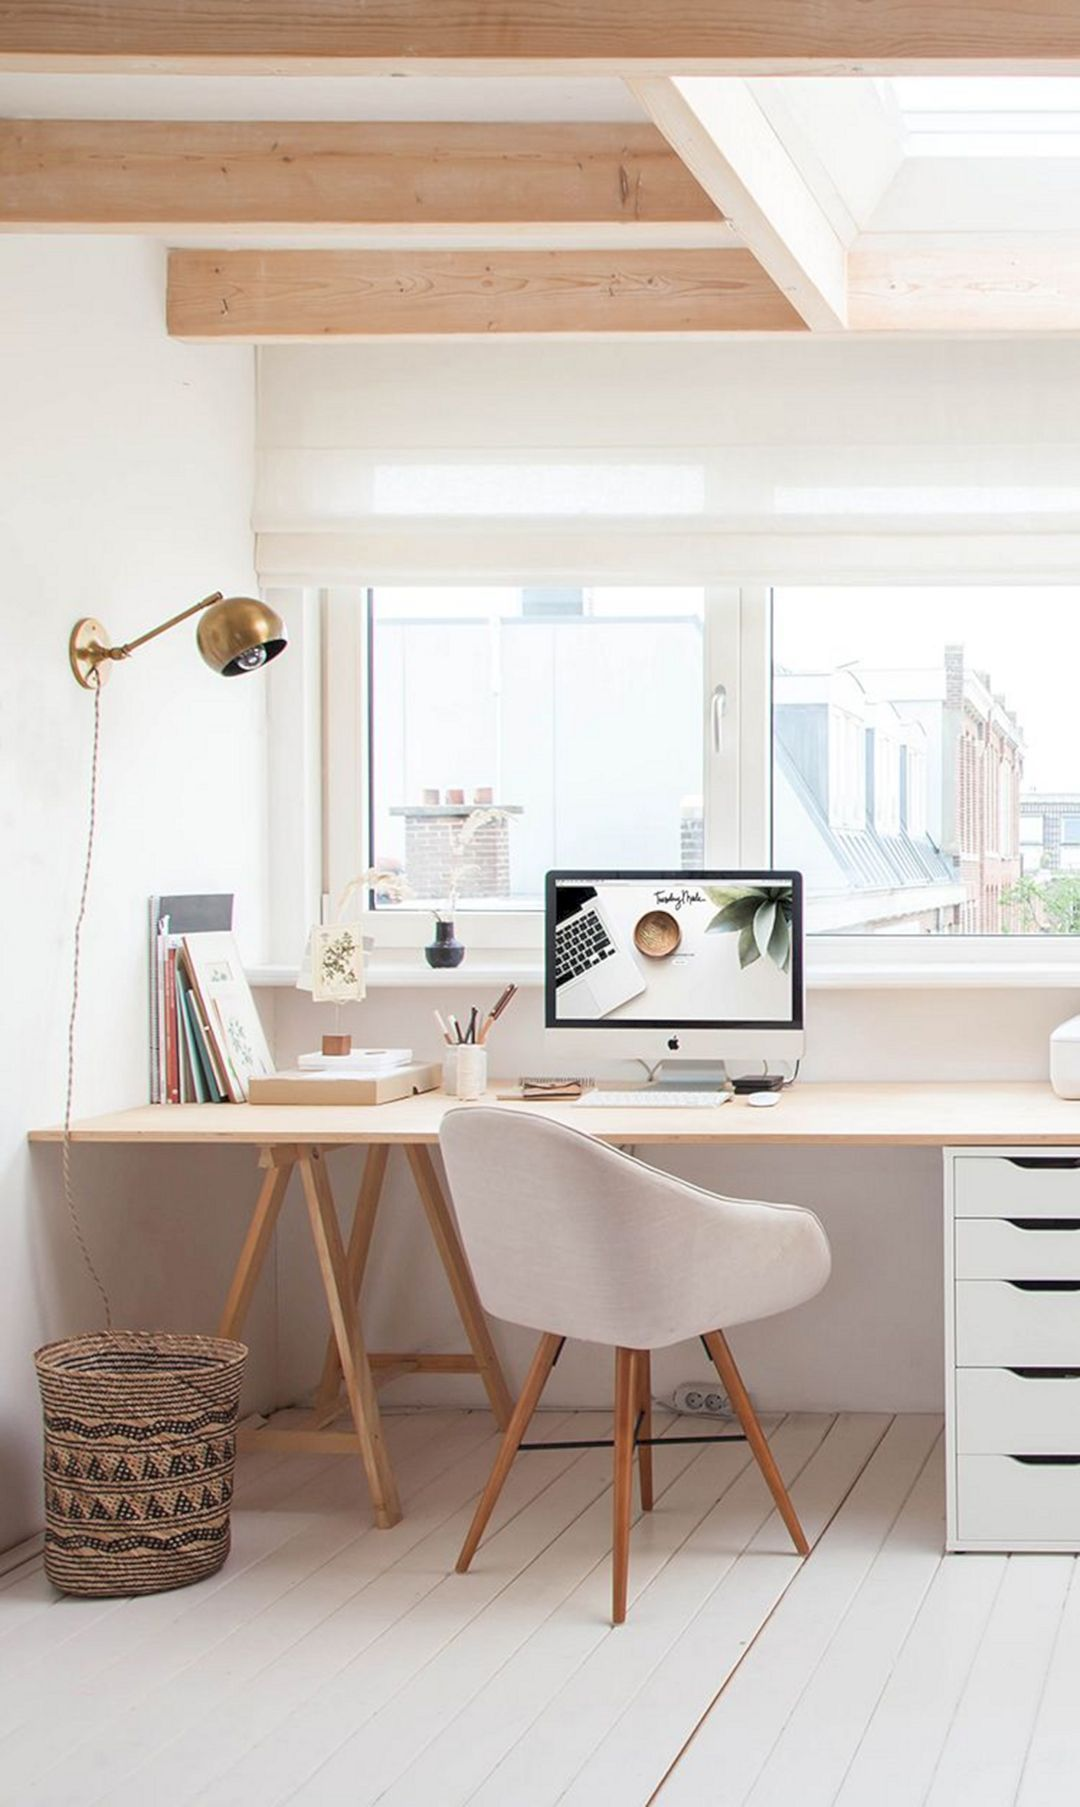 25+ Most Beautiful Home Office Design Ideas | Office designs, Spaces ...